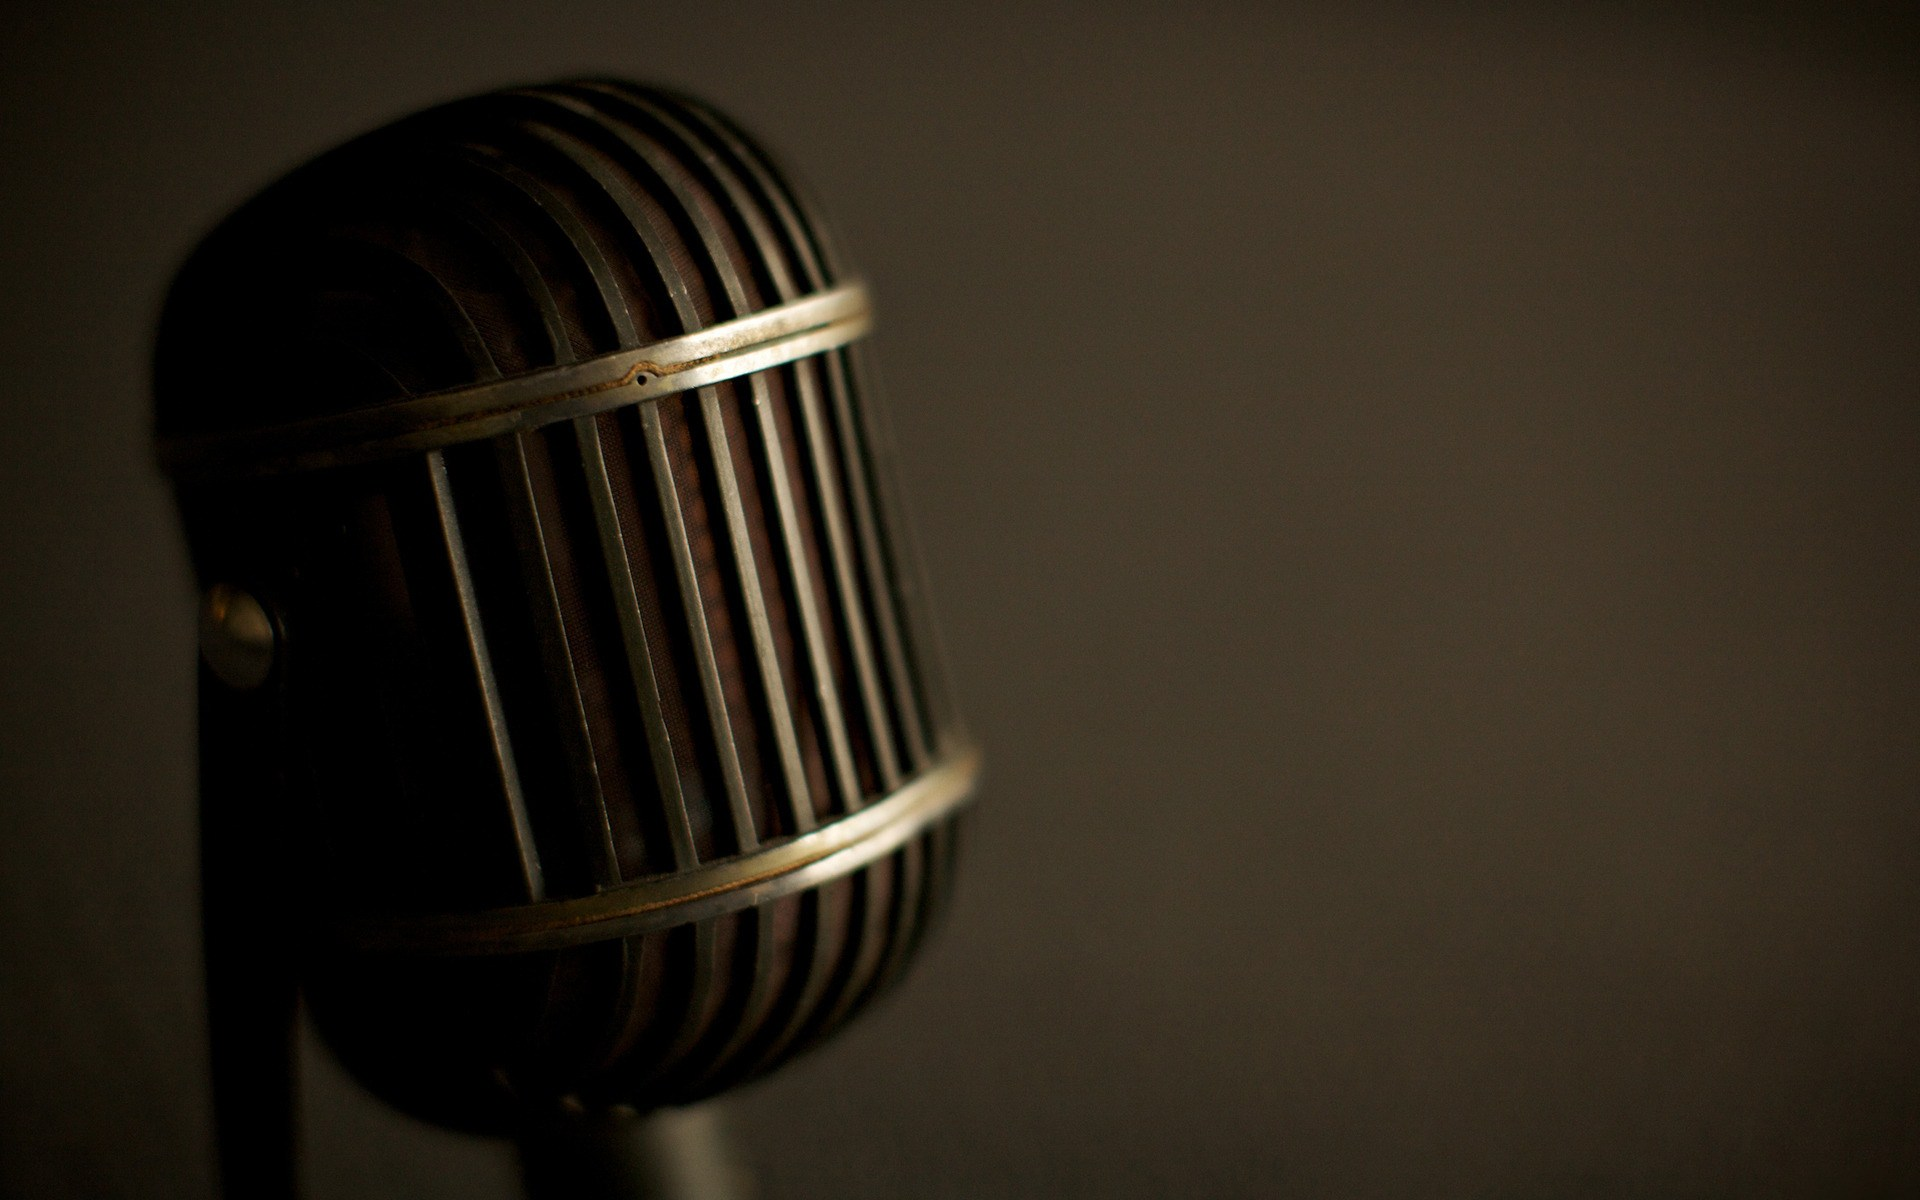 Microphone Close Up Wallpaper